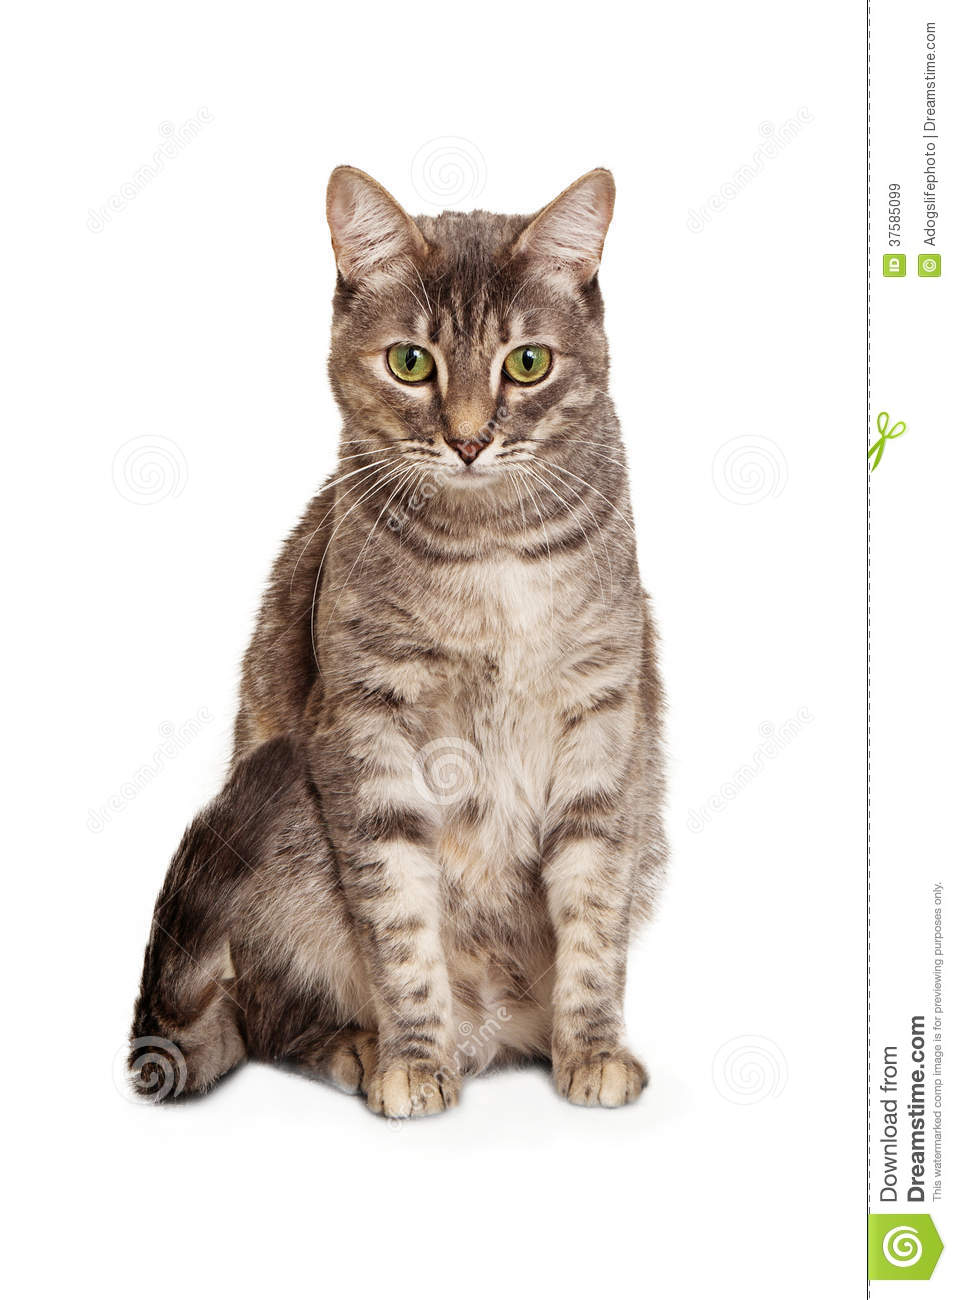 Young Tabby Cat Sitting Looking Down Royalty Free Stock ... Tabby Cat Sitting Up